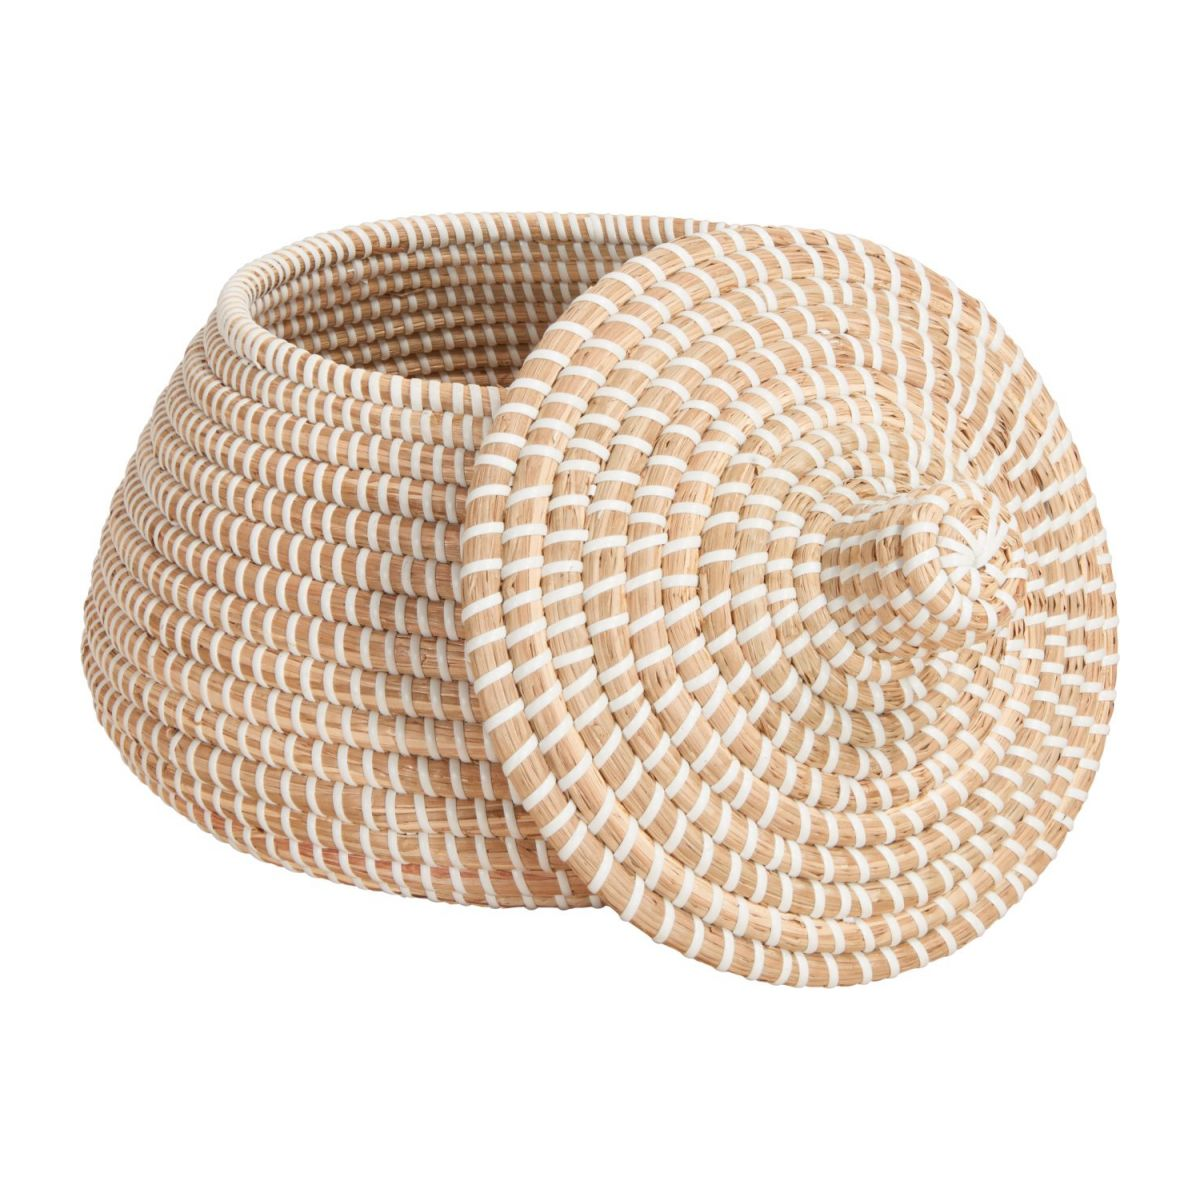 Basket with cover made of seagrass n°2